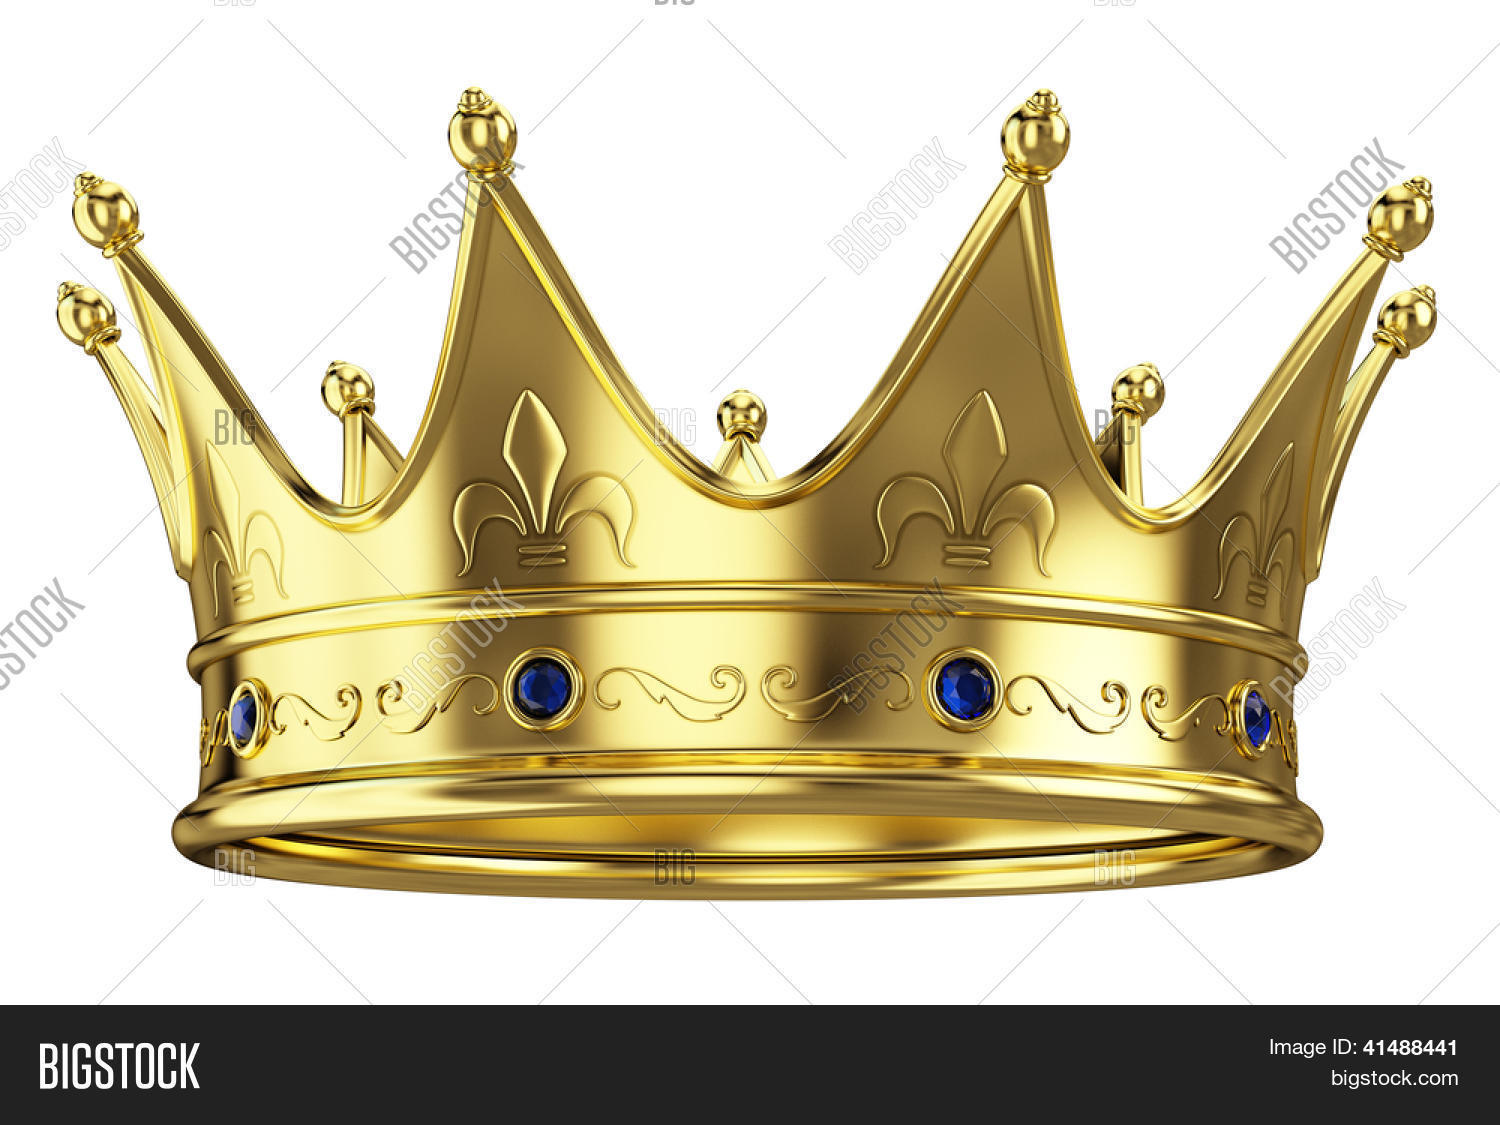 Gold crown background - photo#50